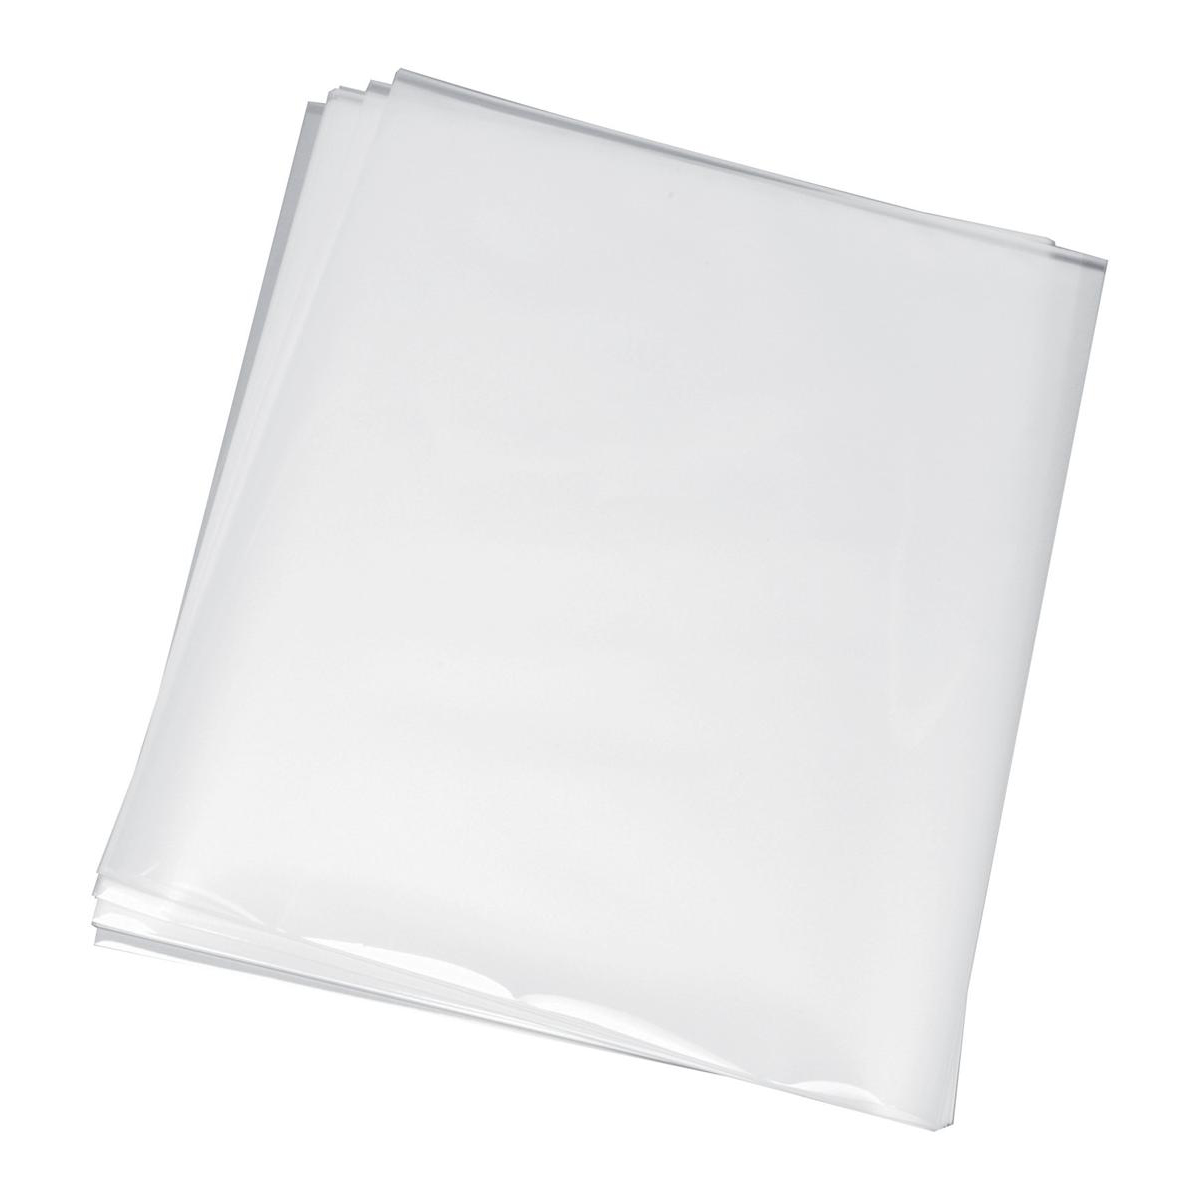 Laminating Film & Pockets 5 Star Office Laminating Pouches 250 micron for A4 Matt Pack 100